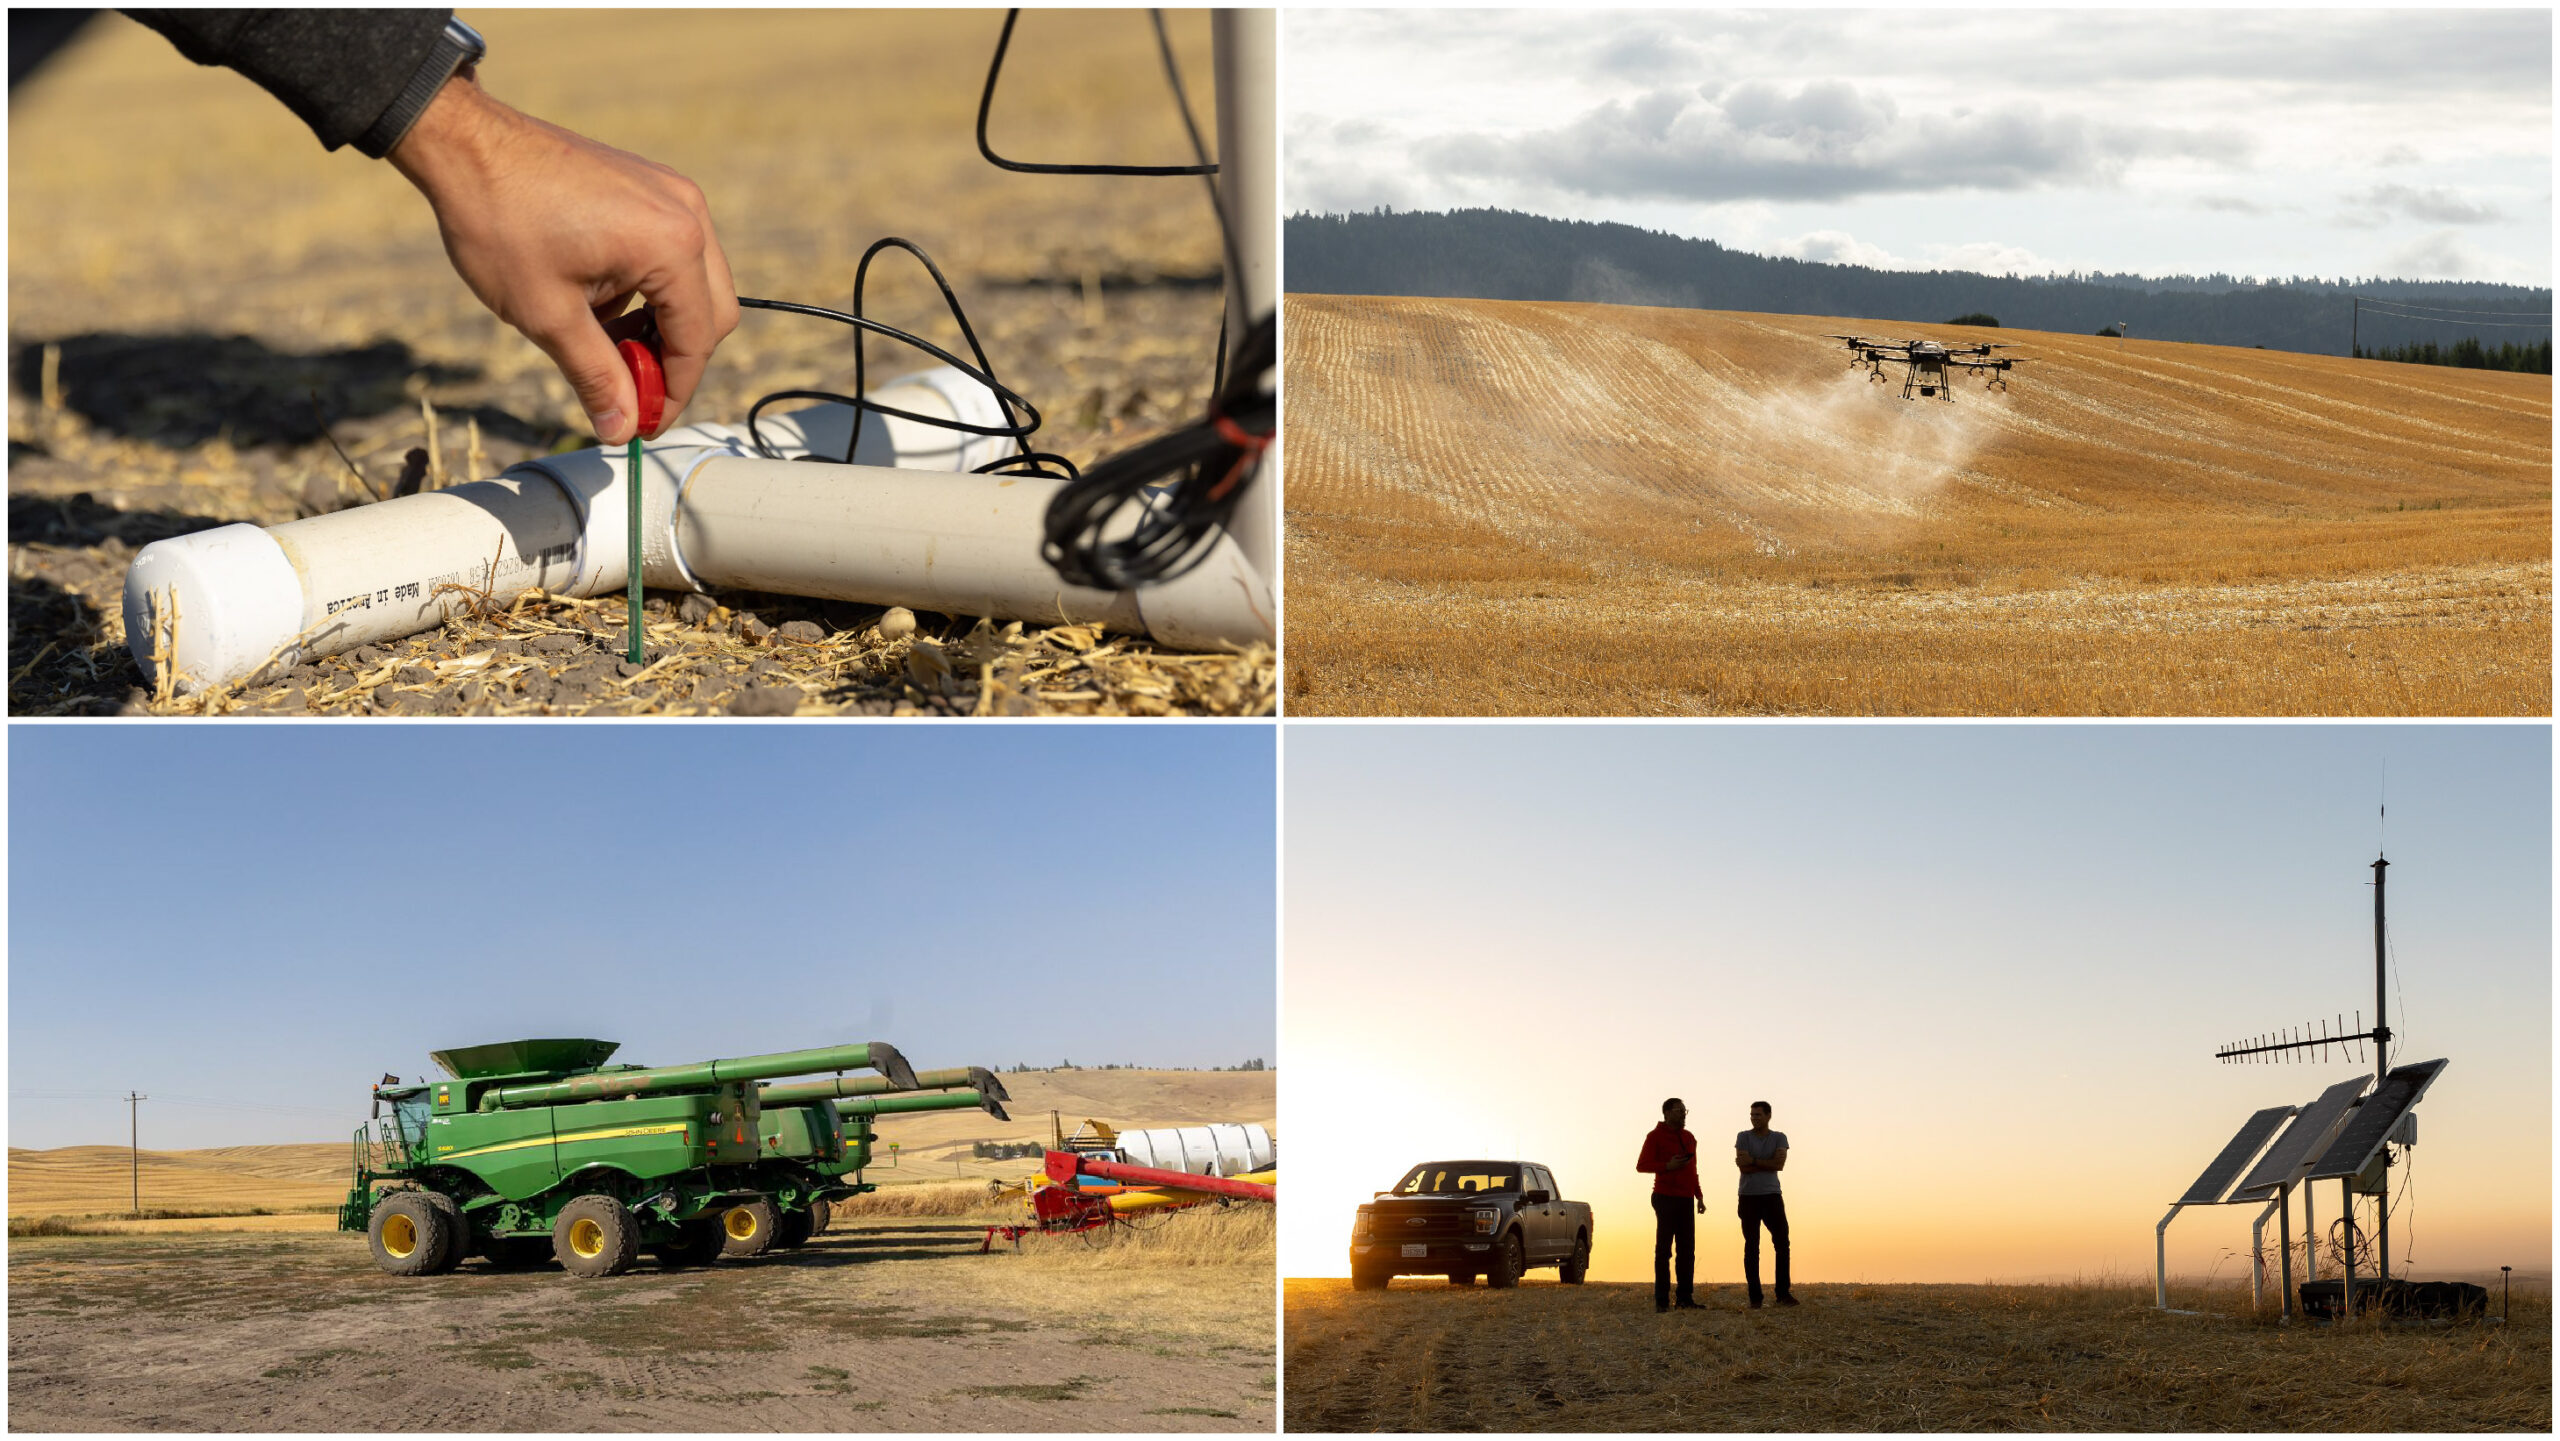 Micro-climate predictions: Enabling hyper-local decisions for agriculture and renewables